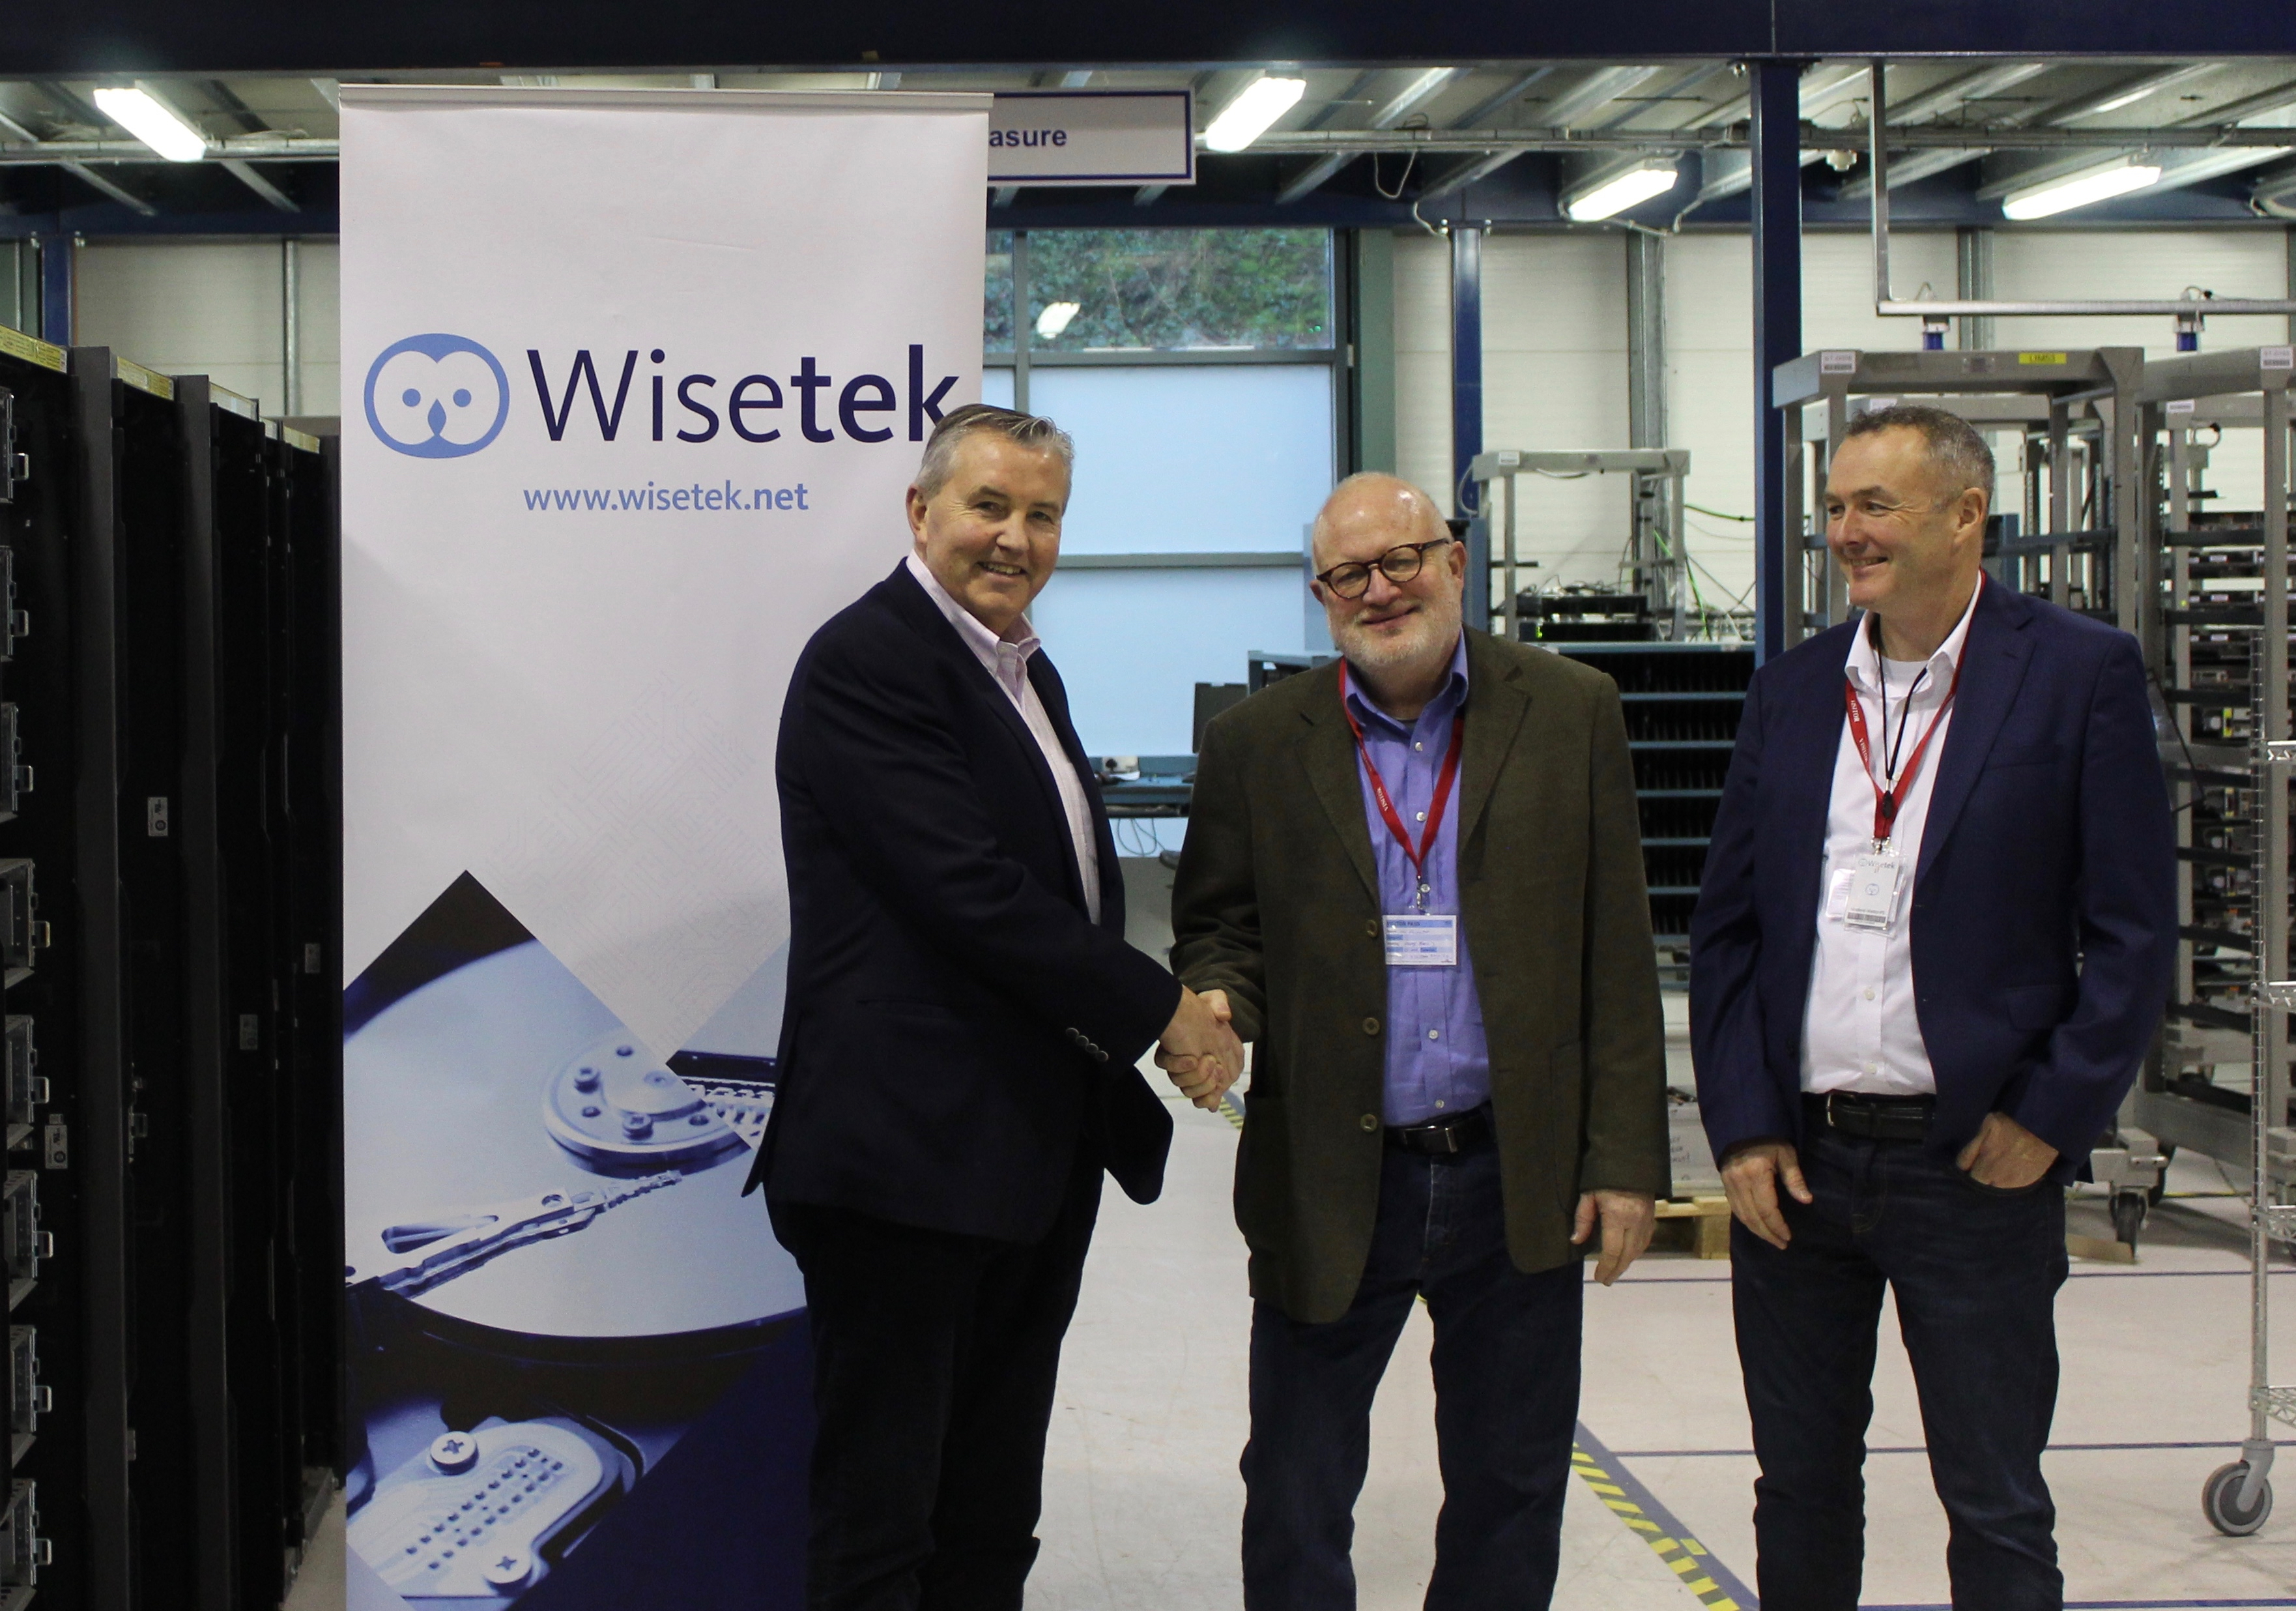 Wisetek to Extend their e-Stewards Electronics Recycling Certification to UK, Ireland and Thailand